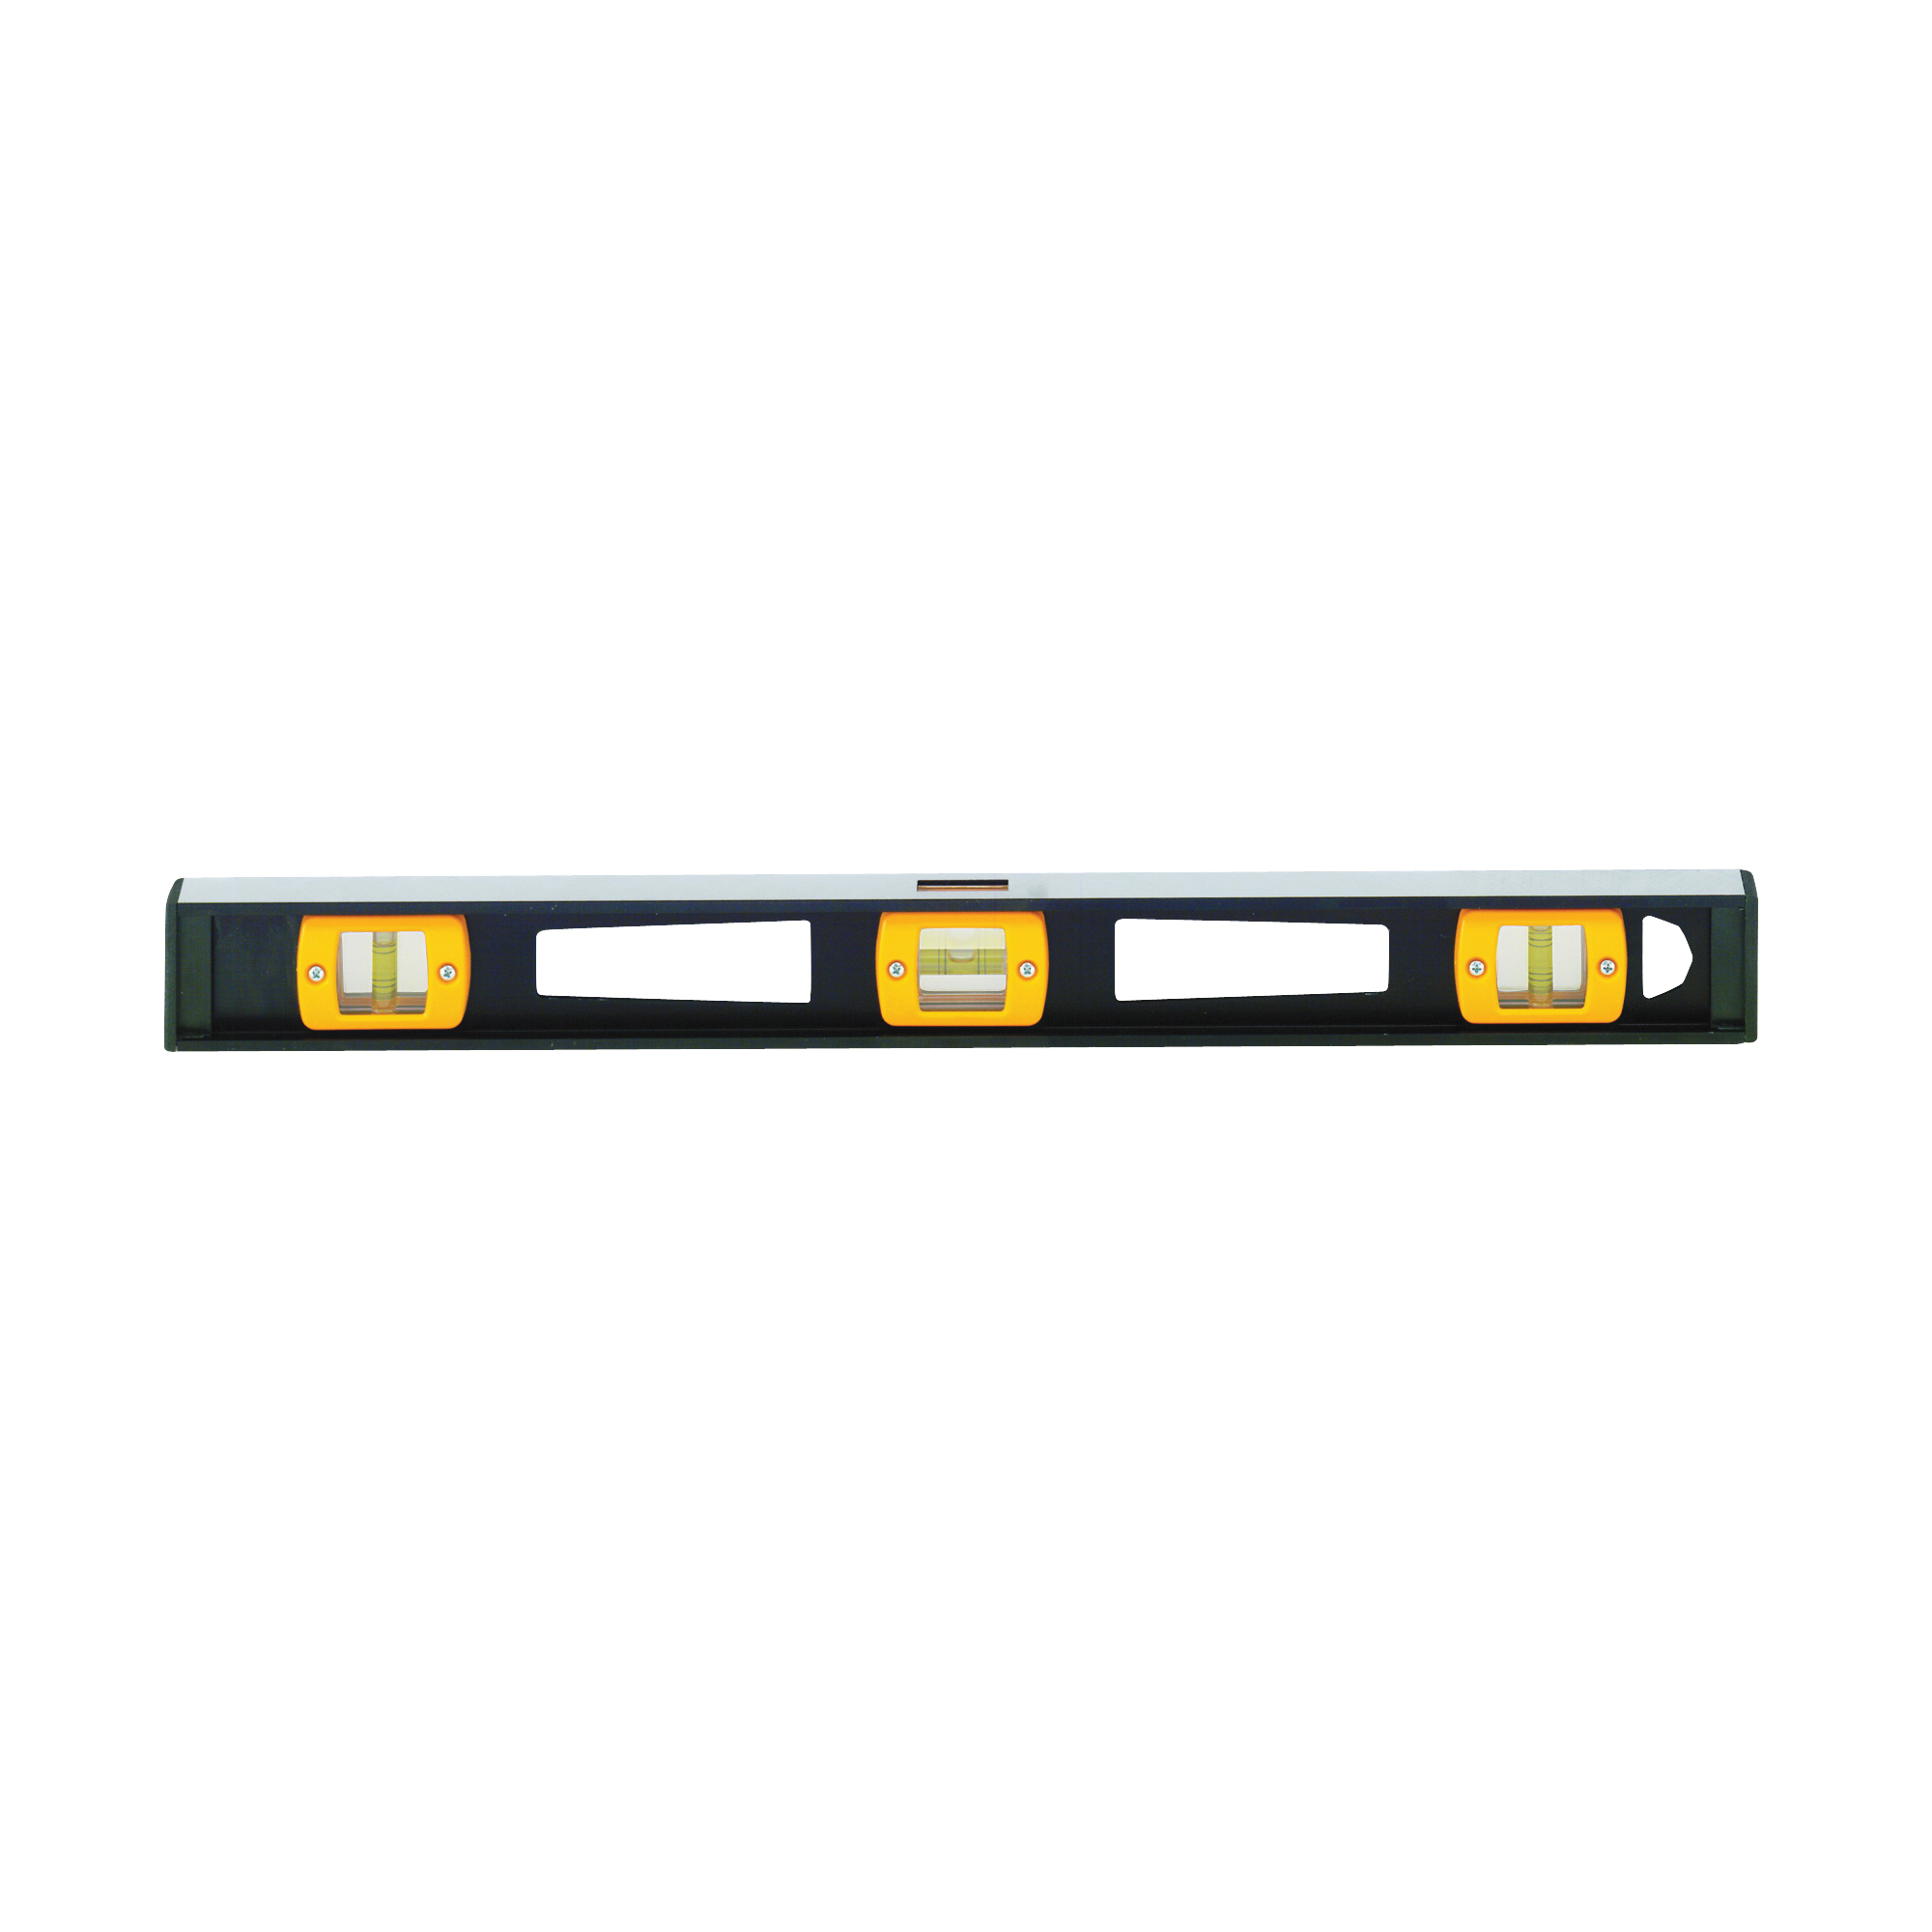 Picture of Johnson 3724 I-Beam Level, 24 in L, 3 -Vial, 1 -Hang Hole, Non-Magnetic, Aluminum, Black